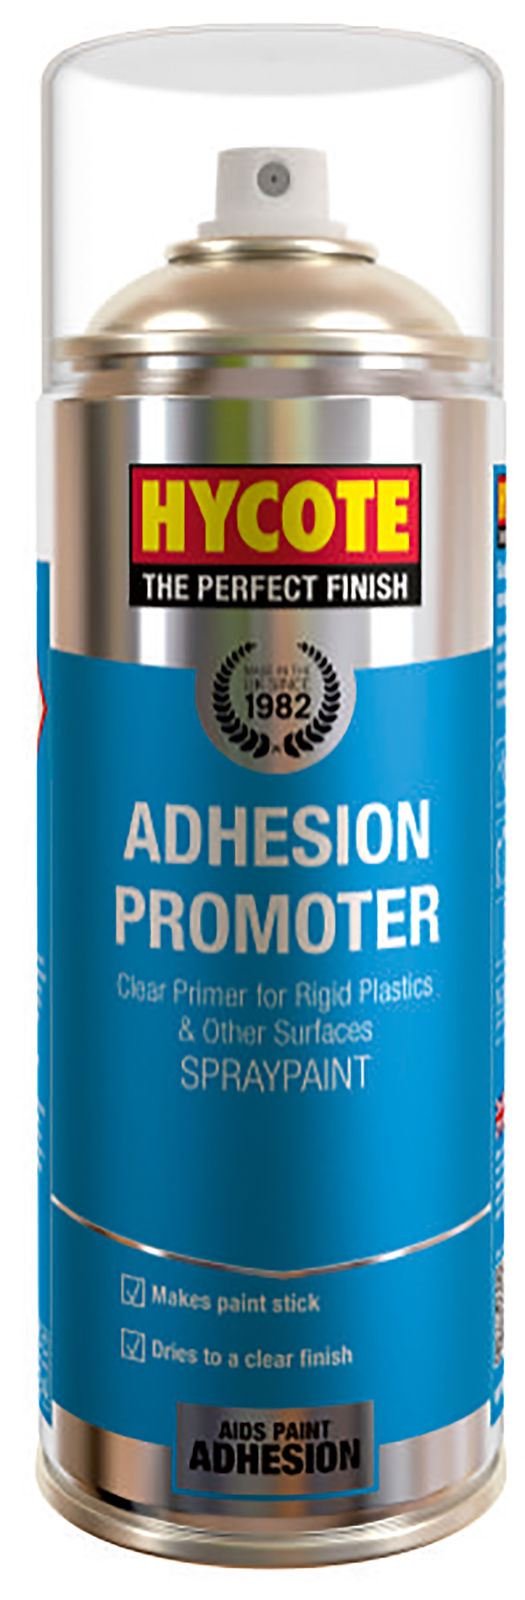 Hycote Adhesion Promoter - 400ml